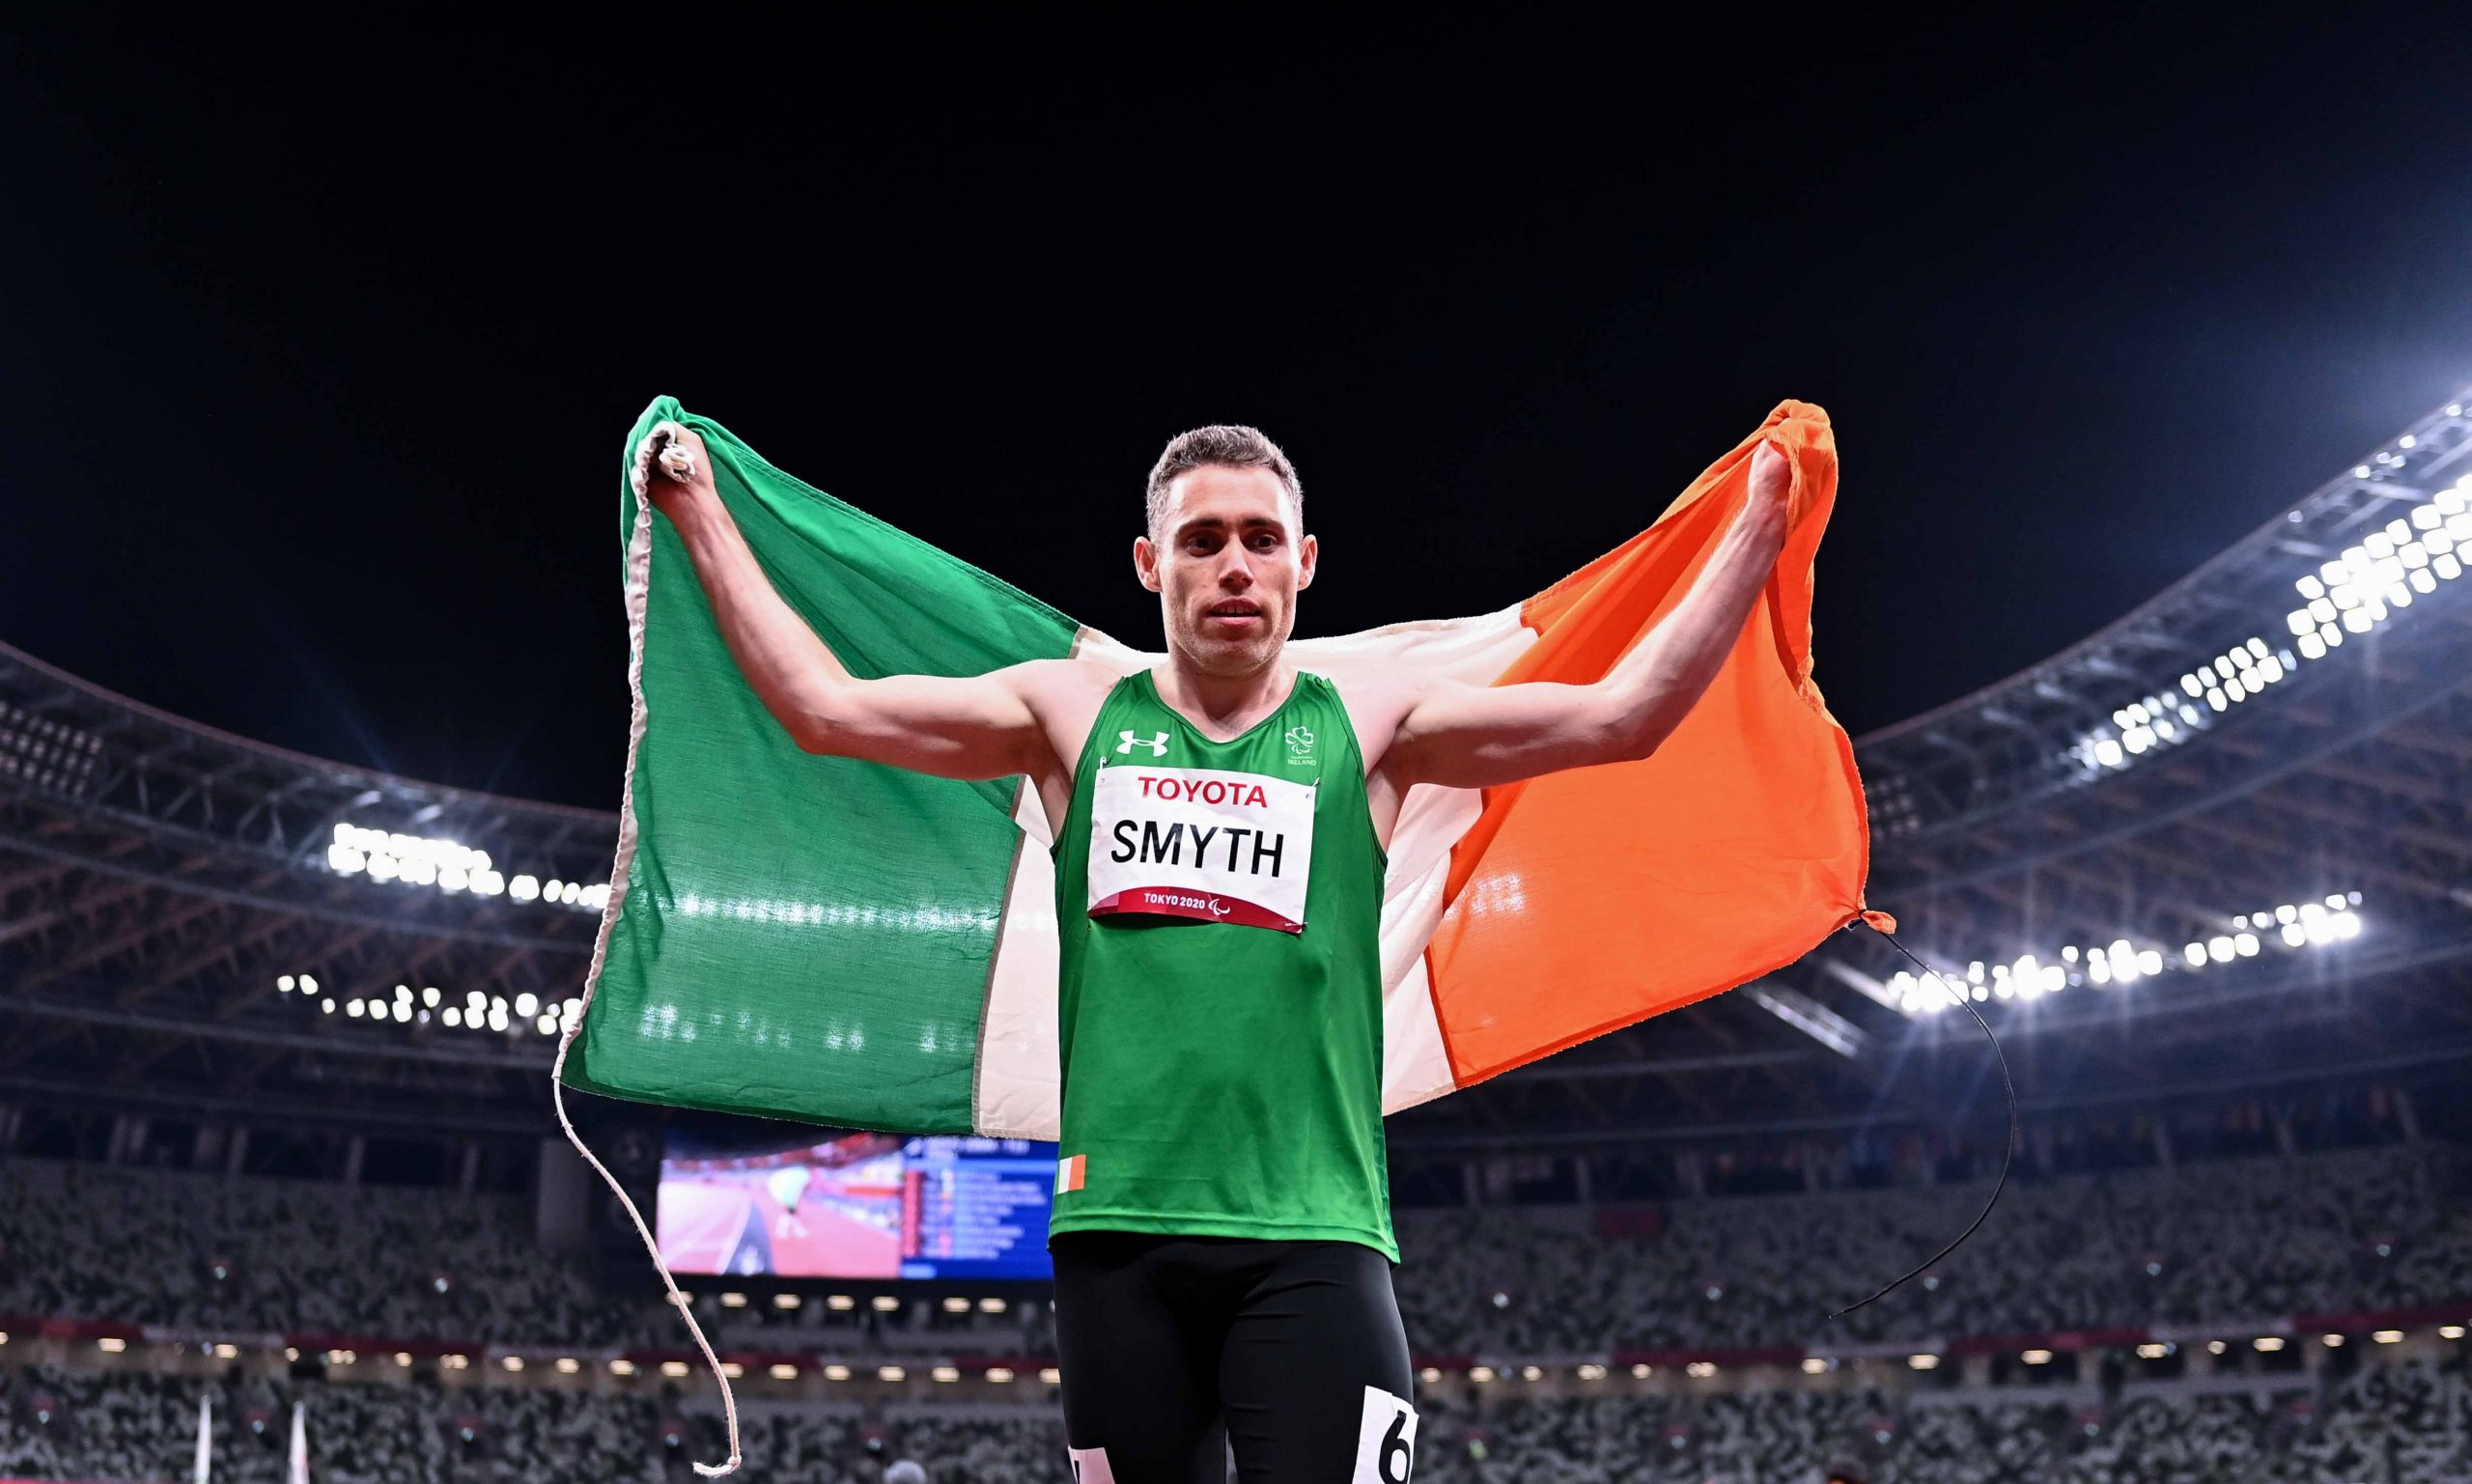 29 August 2021; Jason Smyth of Ireland after winning the T13 Men's 100 metre final at the Olympic Stadium on day five during the Tokyo 2020 Paralympic Games in Tokyo, Japan. Photo by Sam Barnes/Sportsfile *** NO REPRODUCTION FEE ***